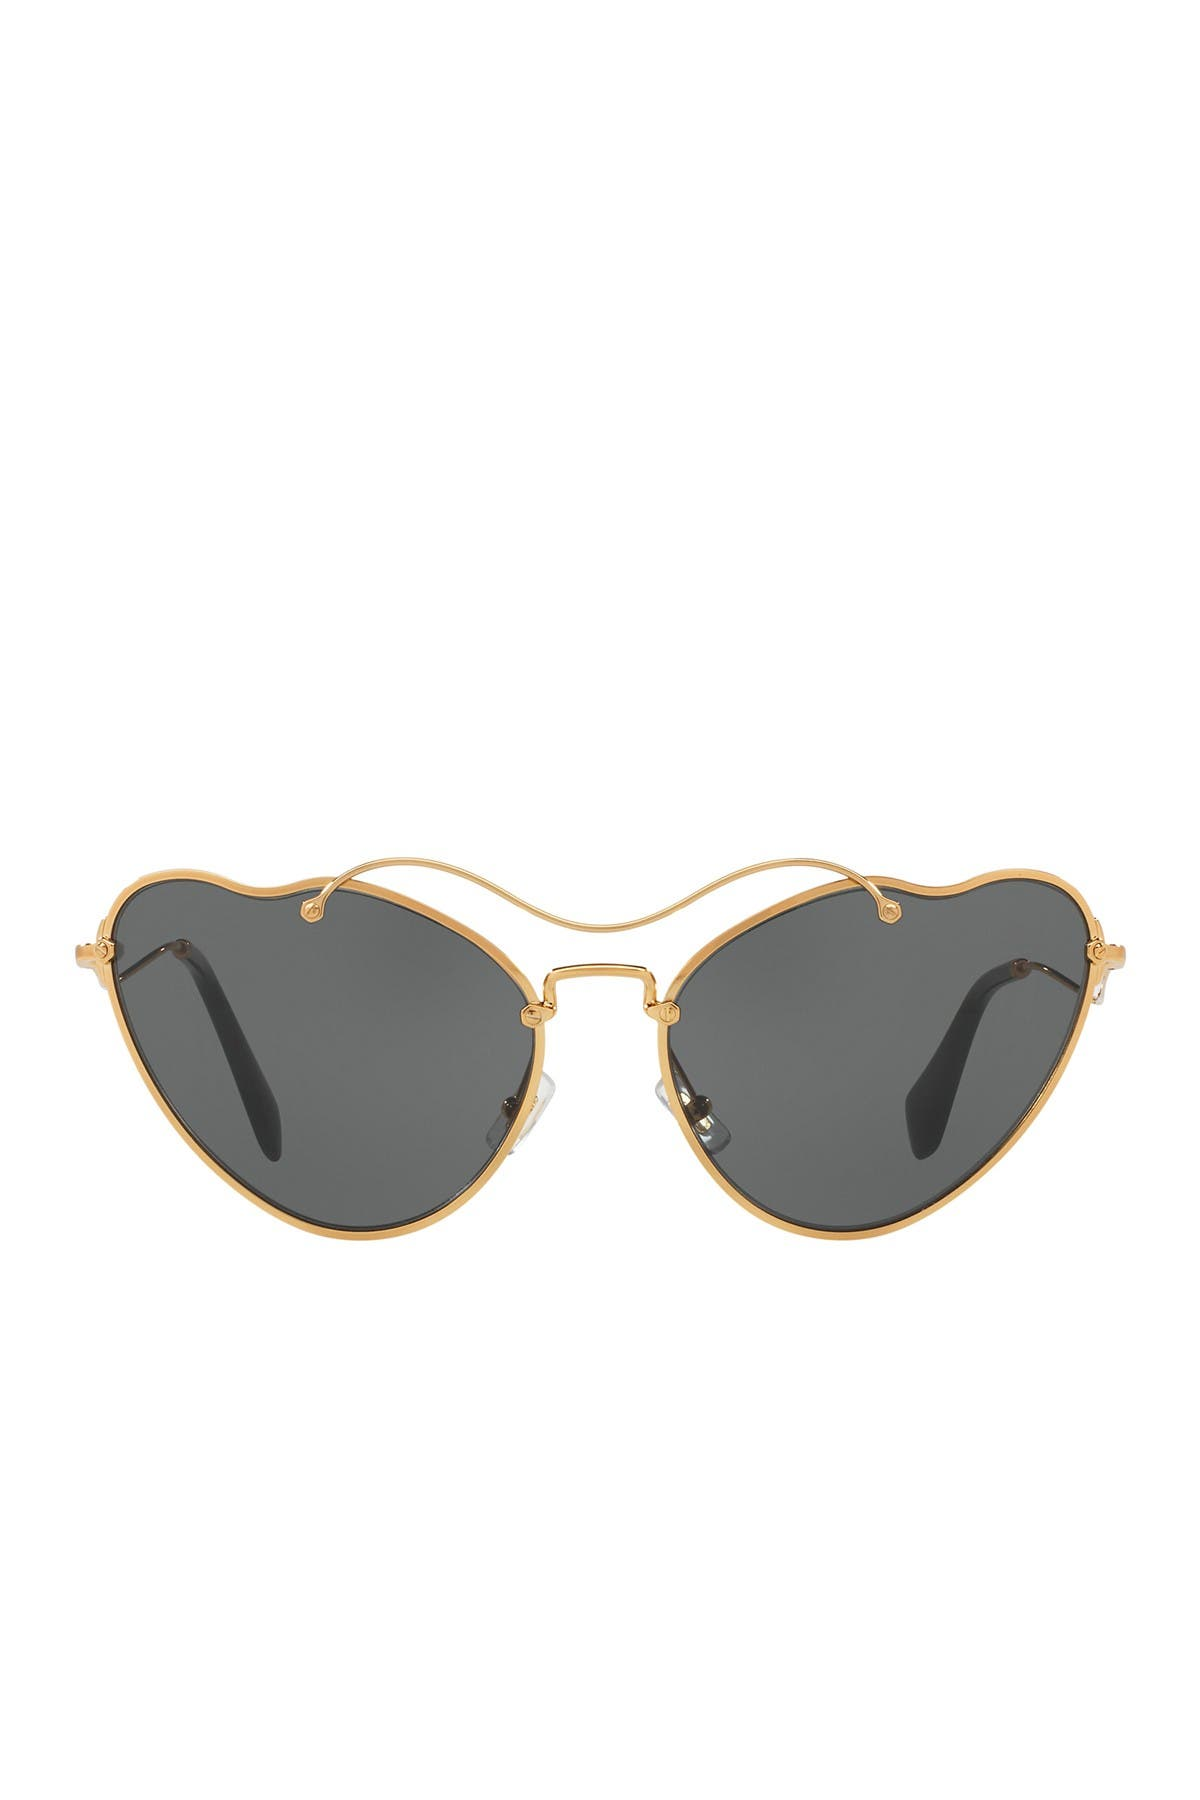 Image of MIU MIU Butterfly 55mm Metal Frame Sunglasses